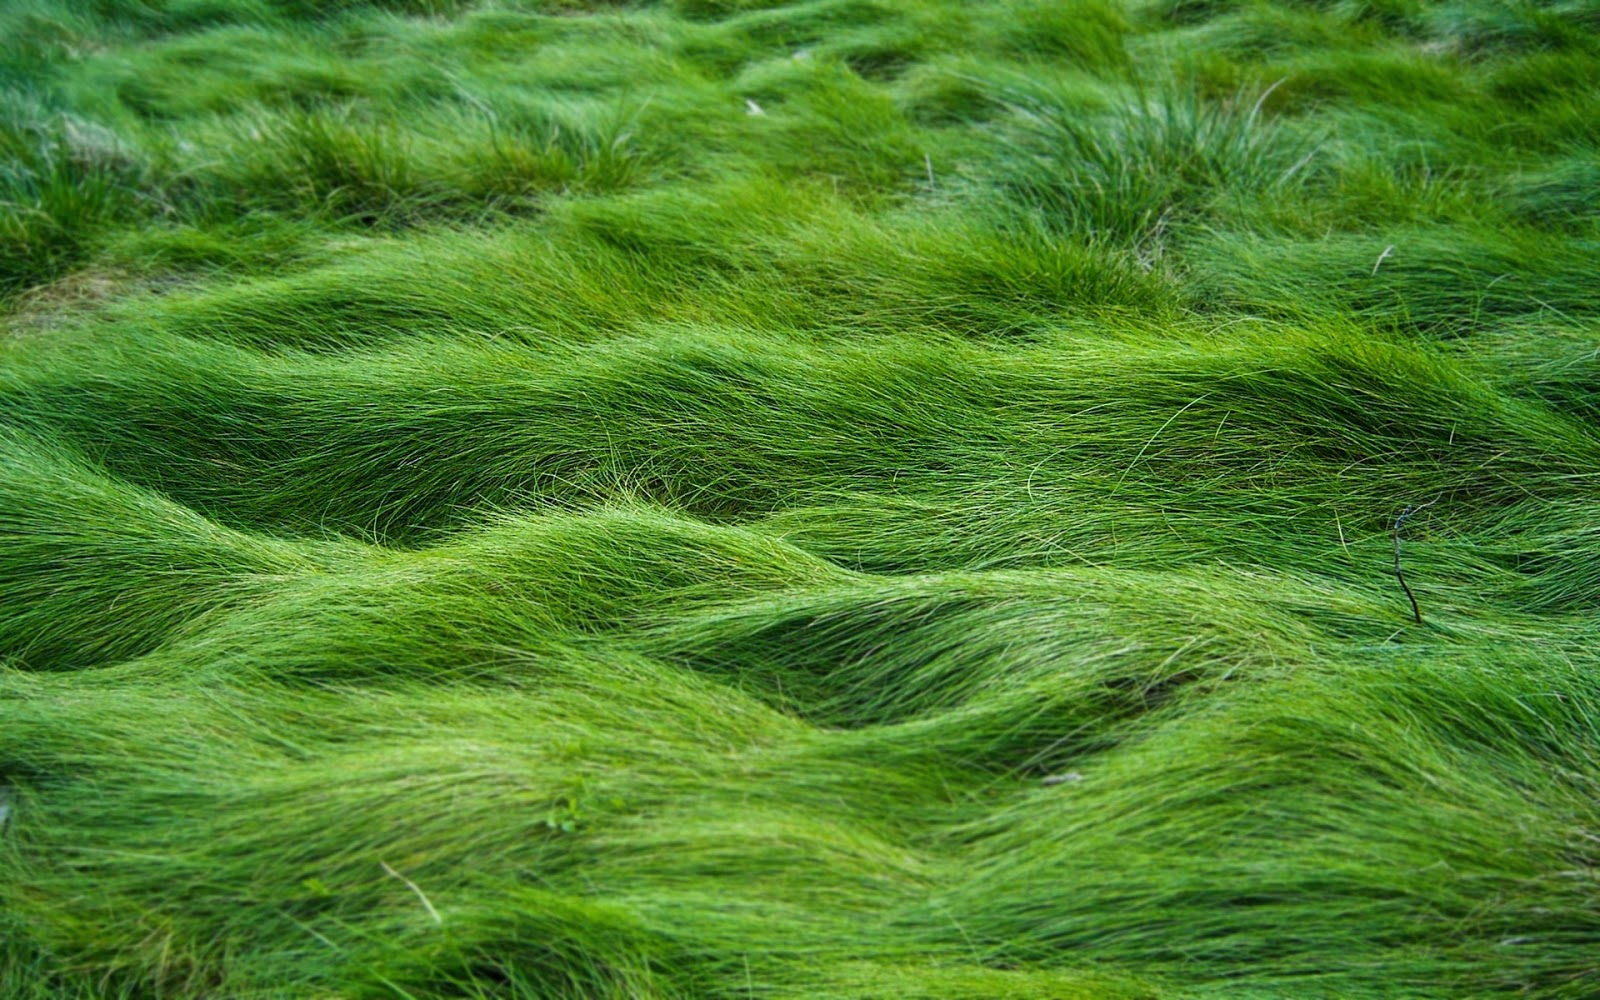 Cell Phone Wallpapers: HD Wallpapers of sea grass